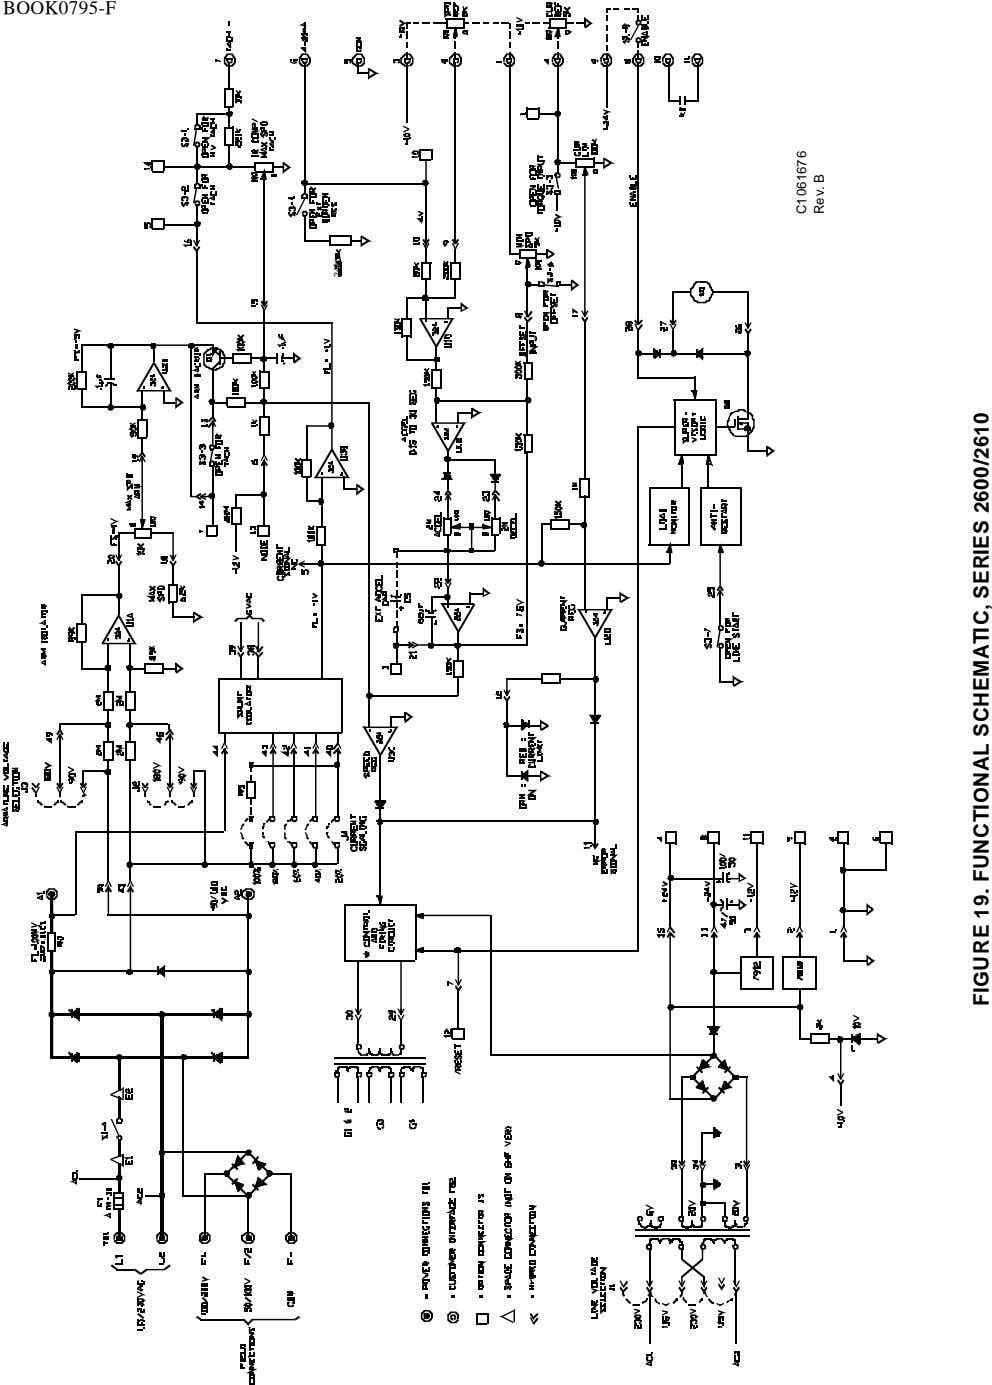 BOOK0795-F 249 C1061676 Rev. B FIGURE 19. FUNCTIONAL SCHEMATIC, SERIES 2600/2610